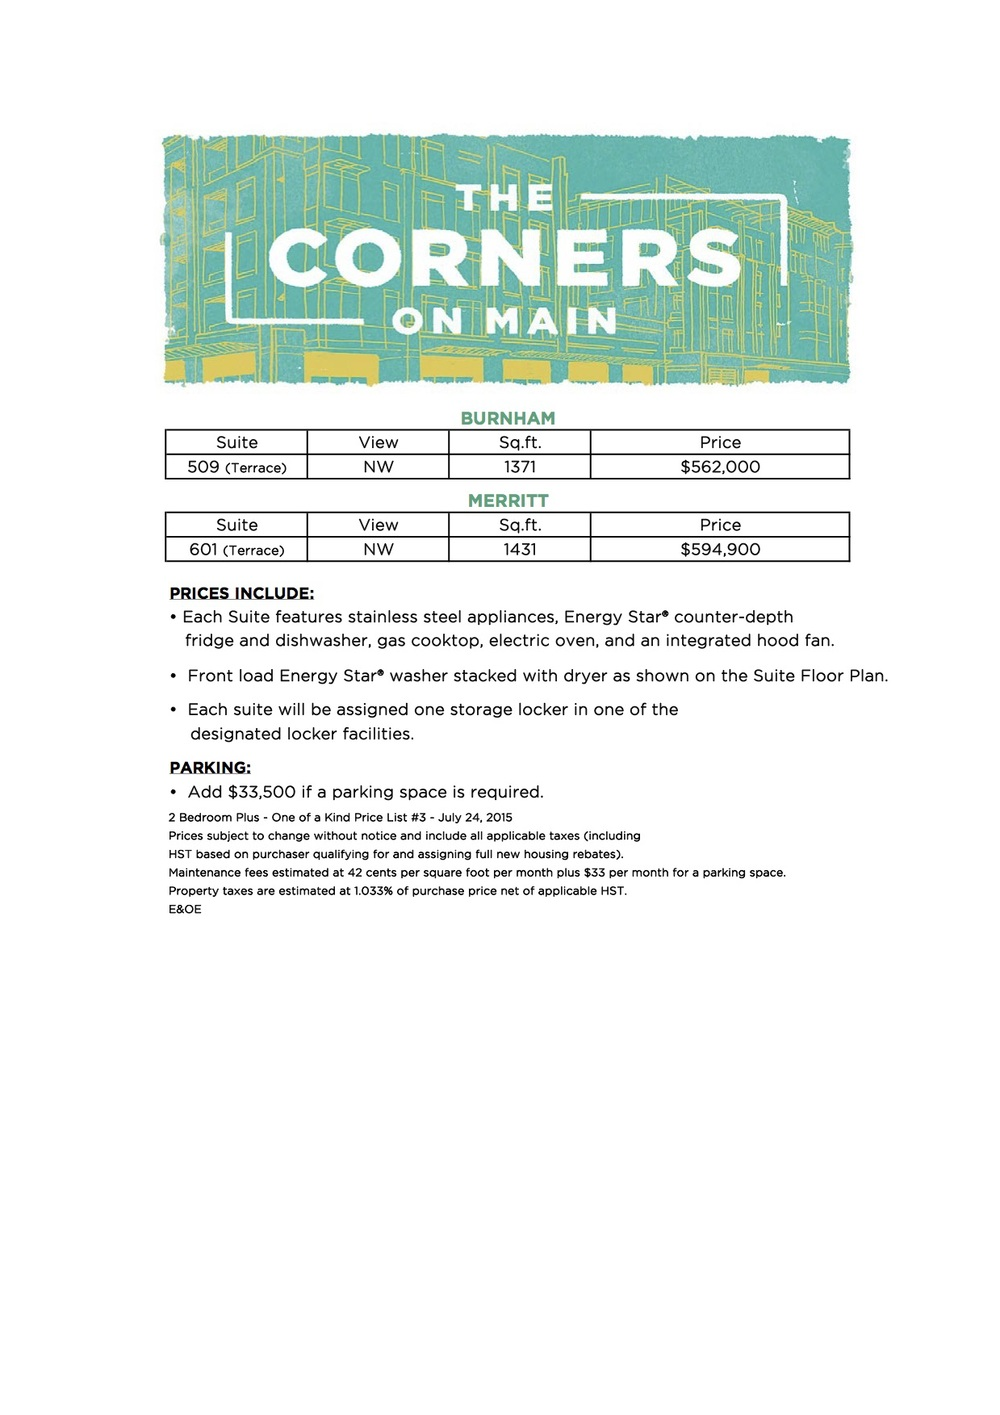 Corners On Main Pricelist_July_24_20157.jpg